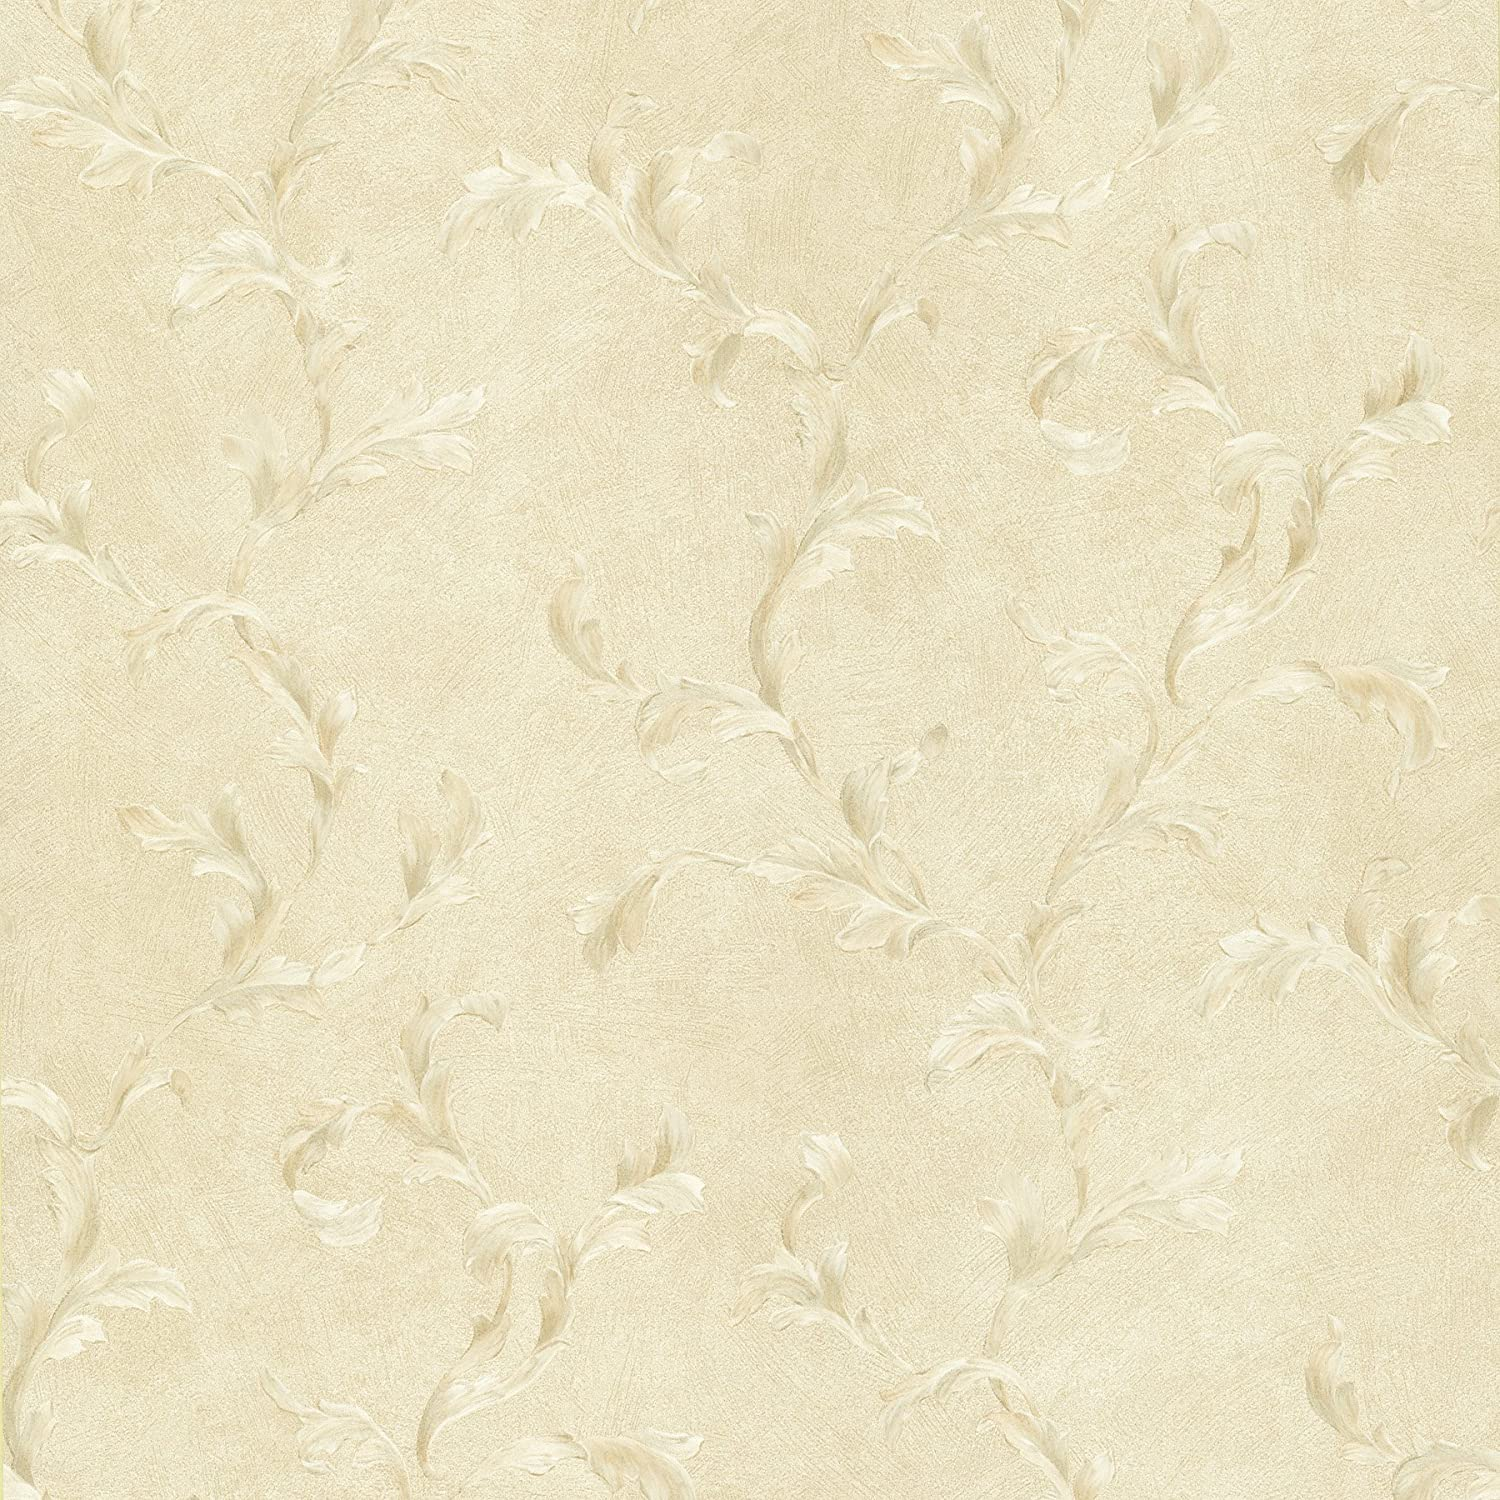 Mirage 987-56557 Traditions IV Fausta Pearl Scroll Wallpaper